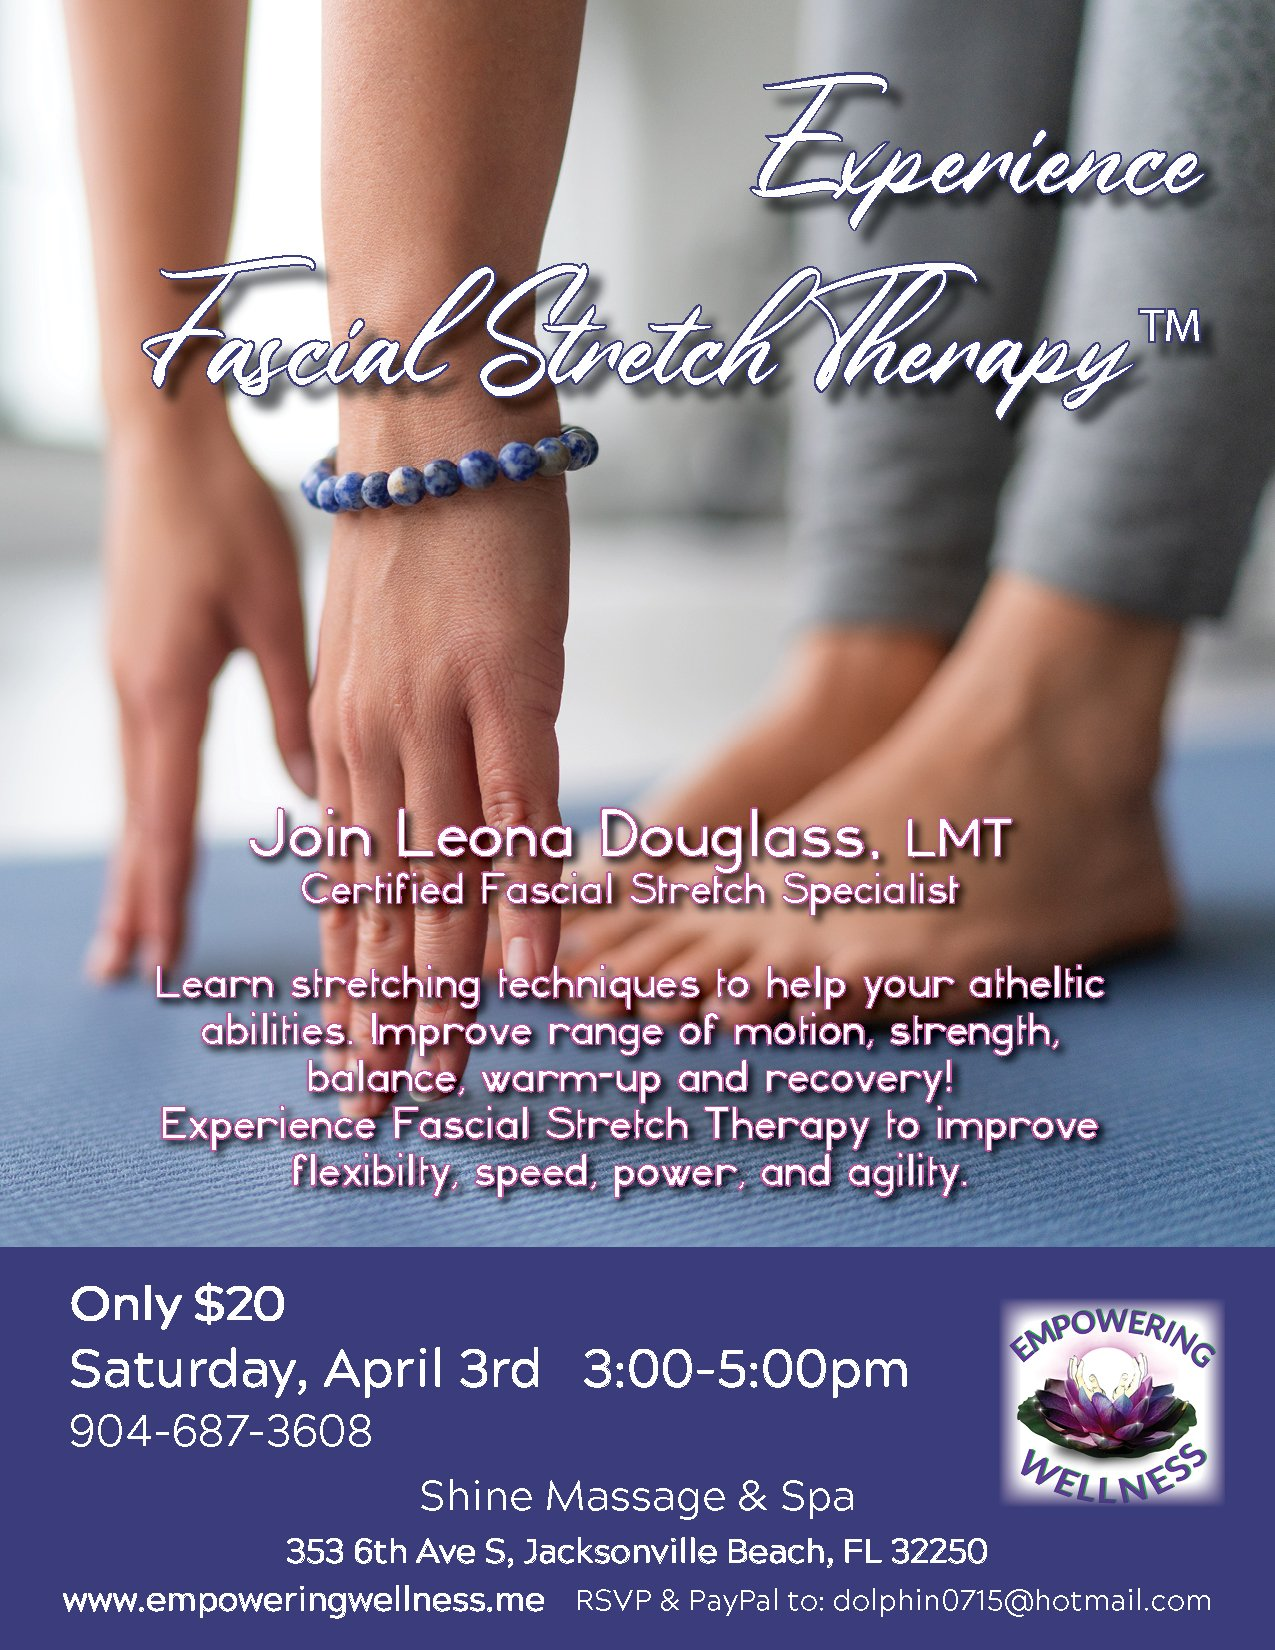 Fascial Stretch Therapy Workshop